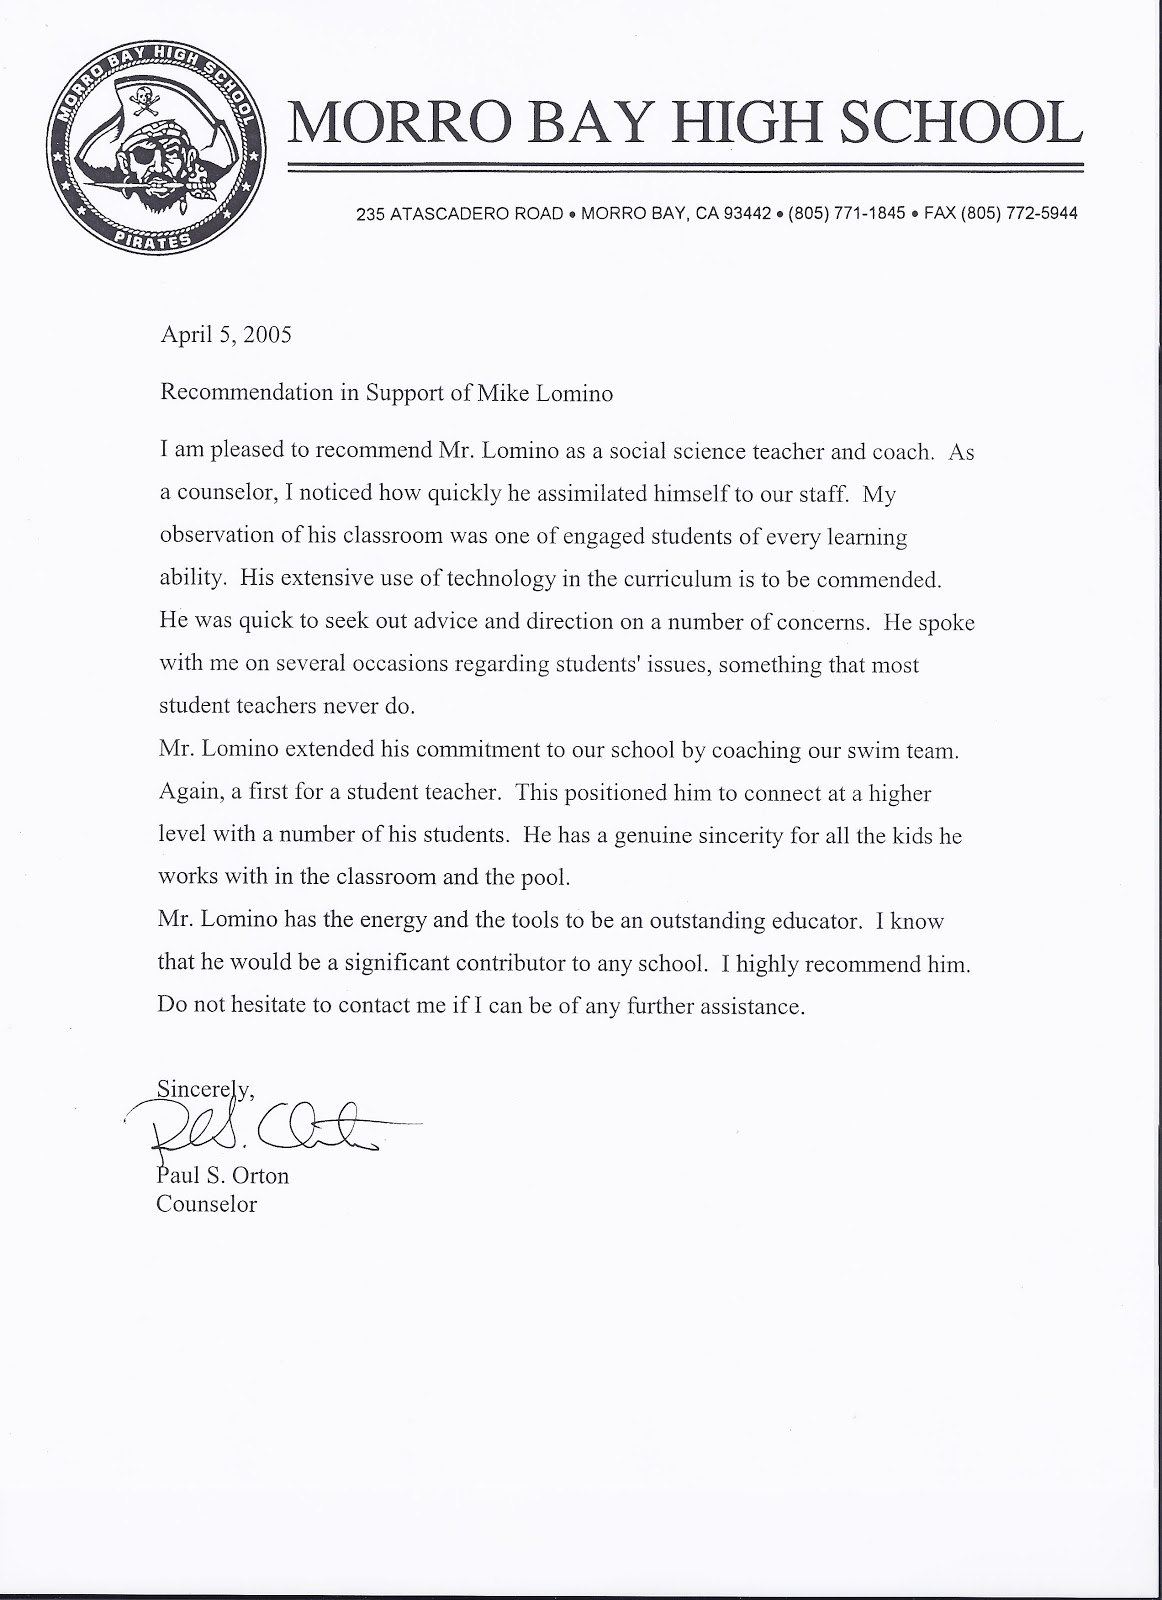 Mr Lomino Letters Of Recommendation Morro Bay High